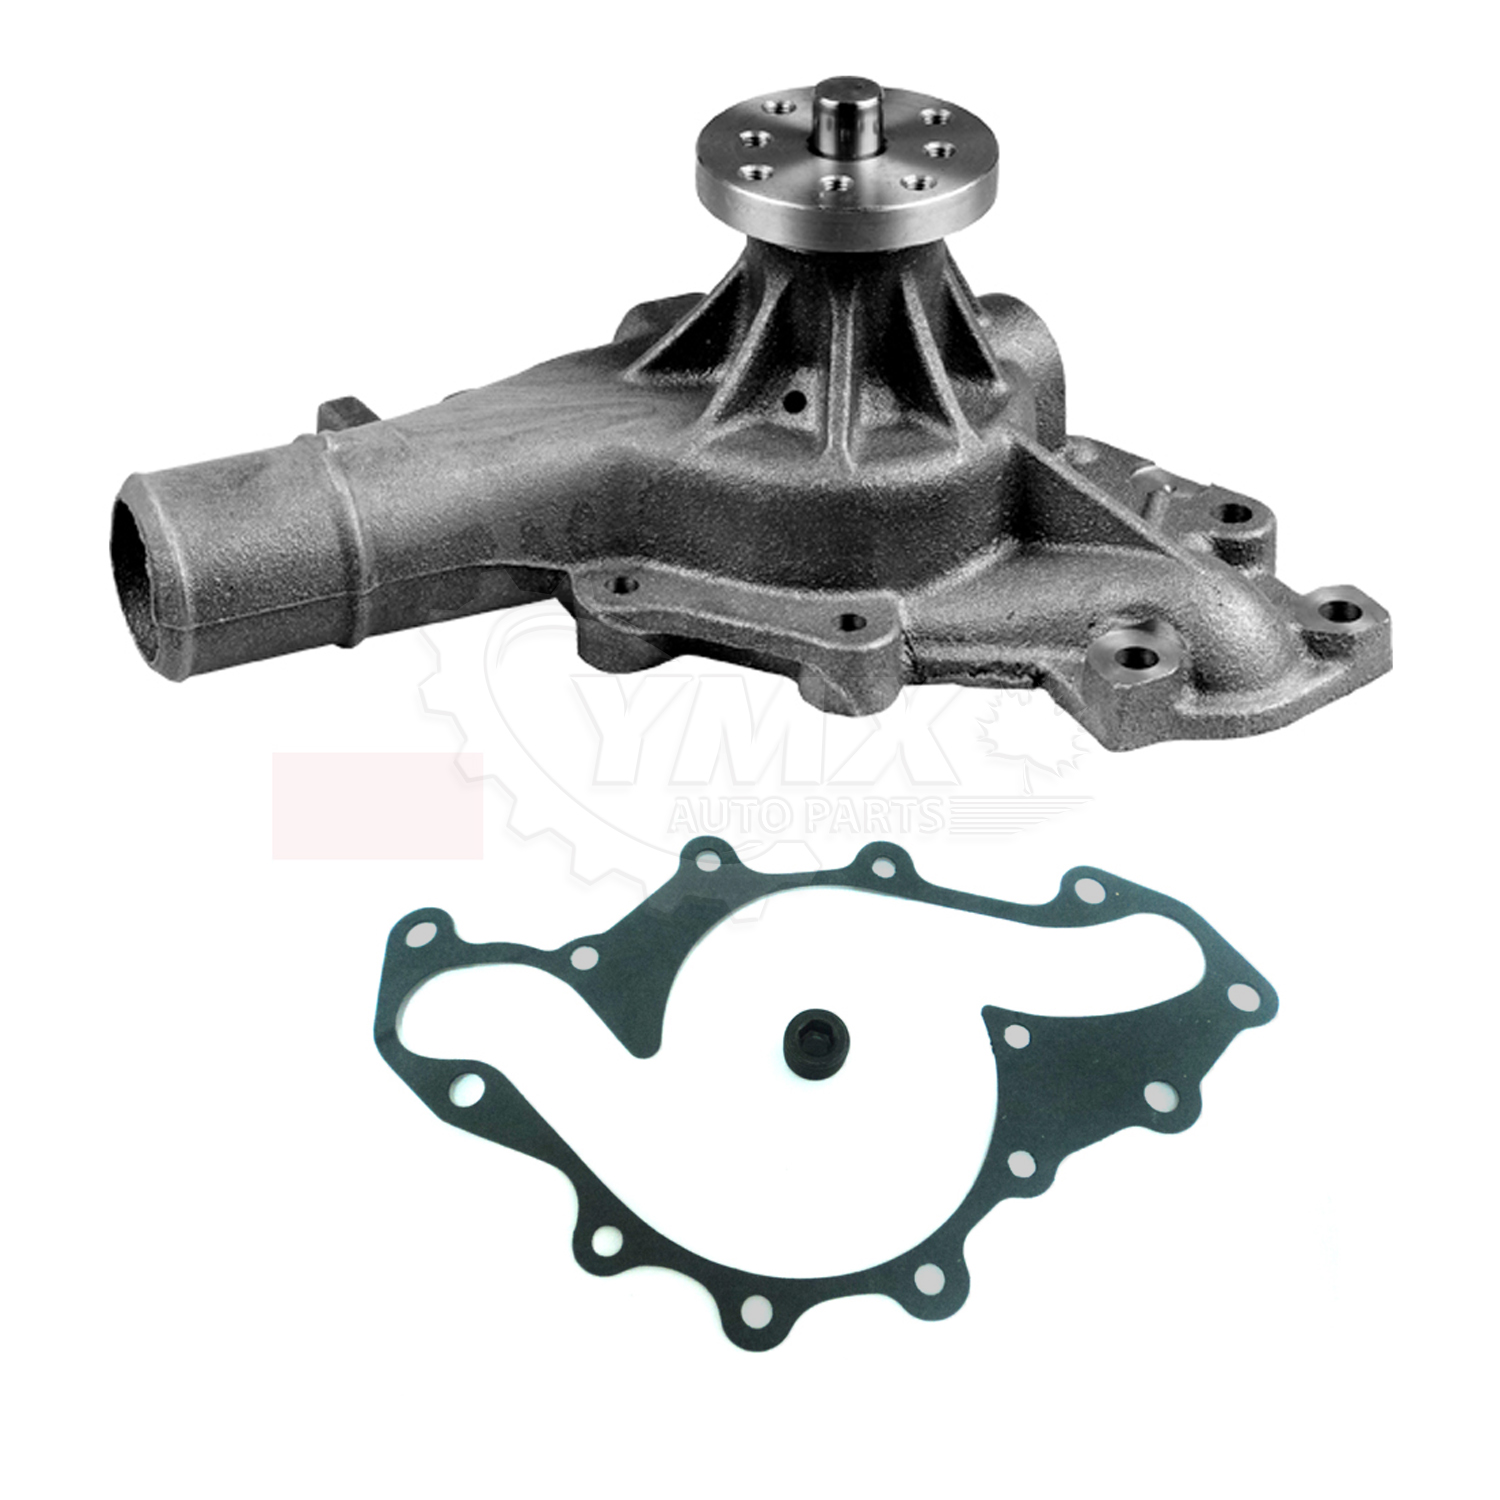 Water Pump W// Gasket For 1999-2004 Chevy GMC Hummer 6.5L V8 OHV DIESEL AW5086